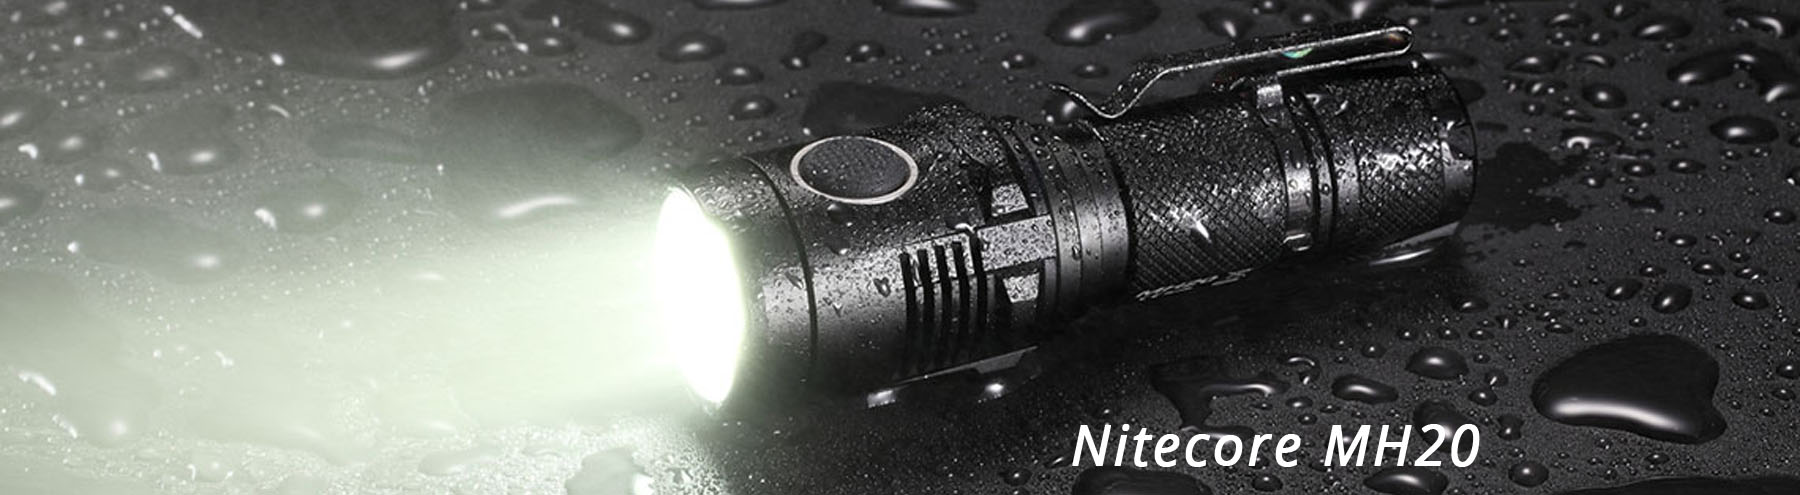 EternalFire E05 led flashlight